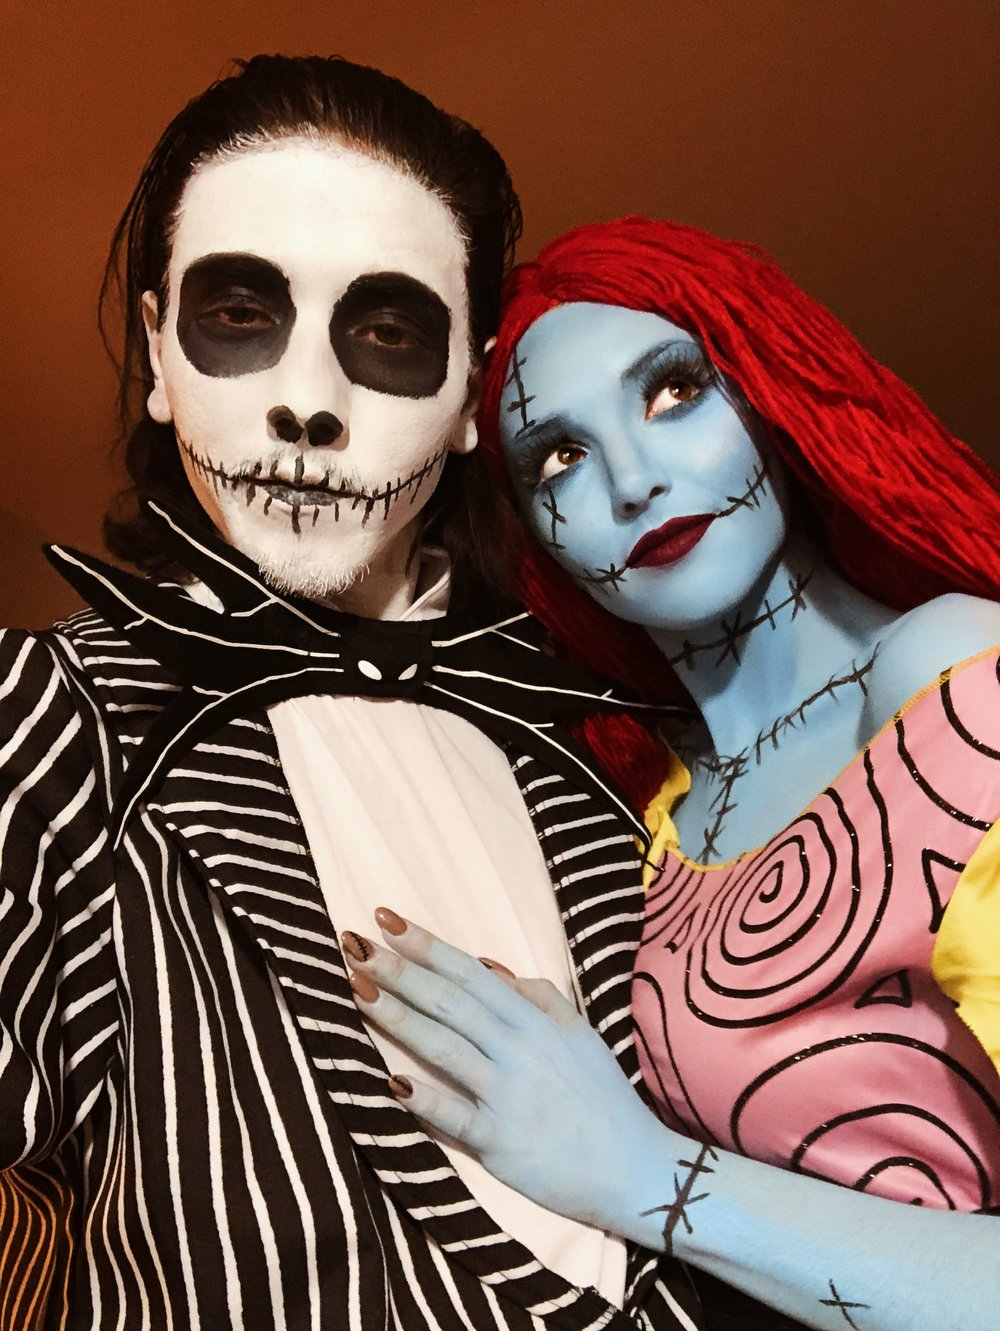 a nightmare before xmas - Nightmare Before Christmas Halloween Costume